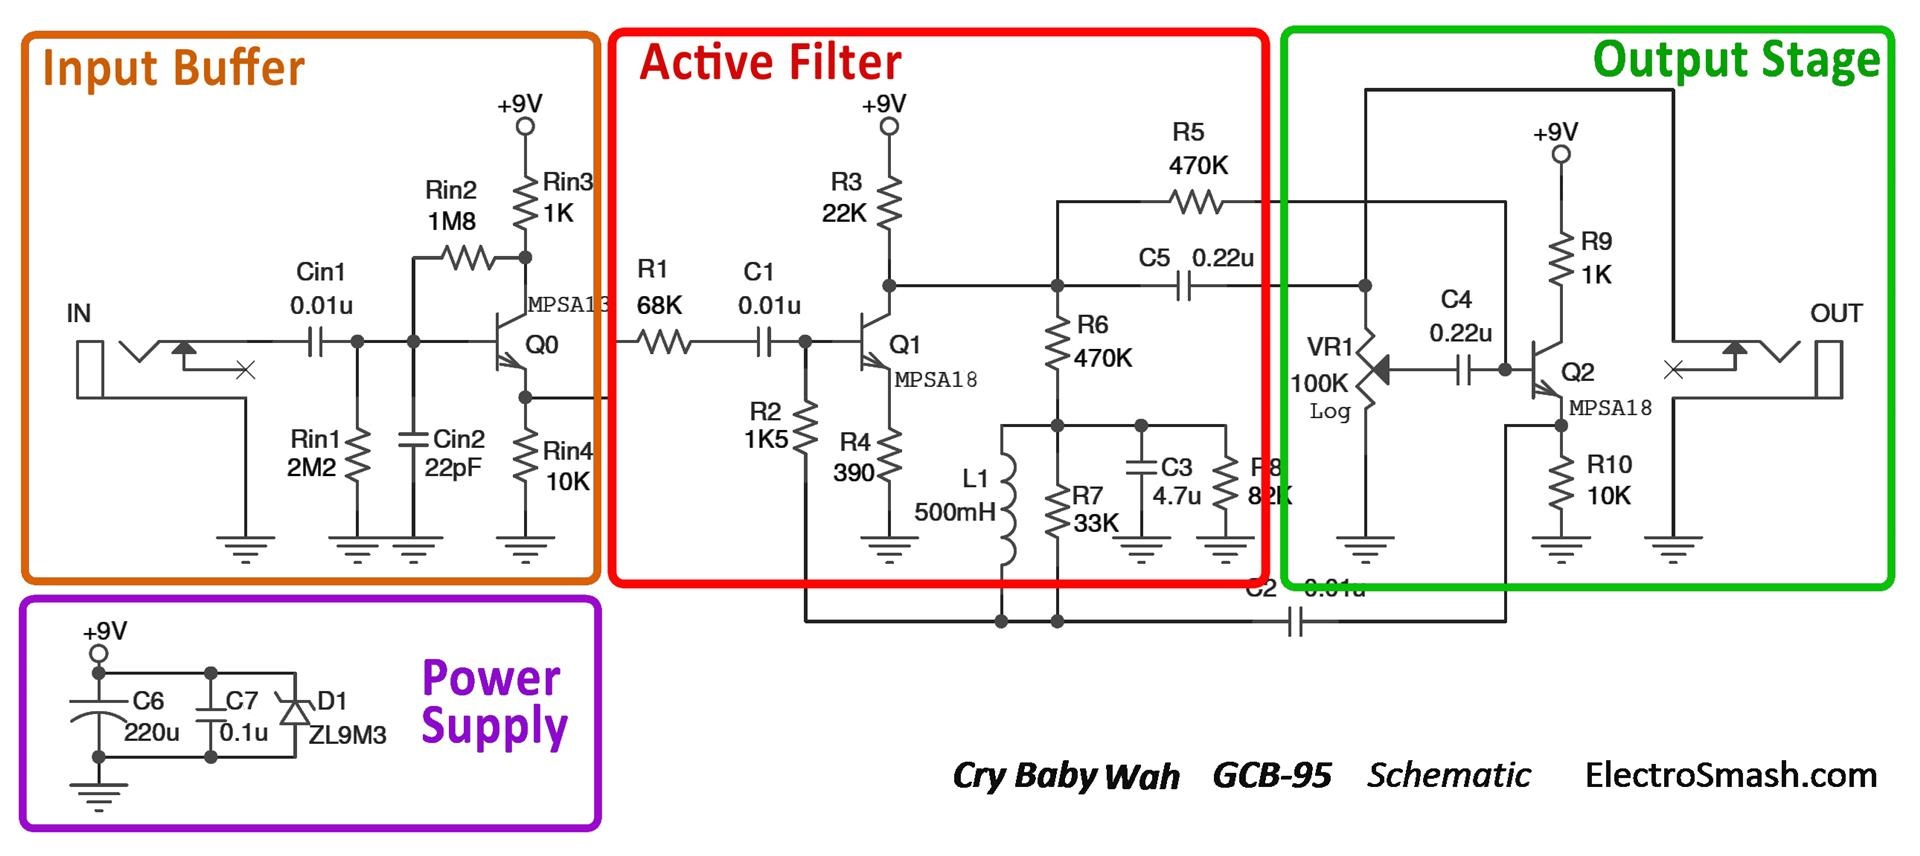 electrosmash dunlop crybaby gcb 95 circuit analysis cry baby wah gcb 95 schematic parts small